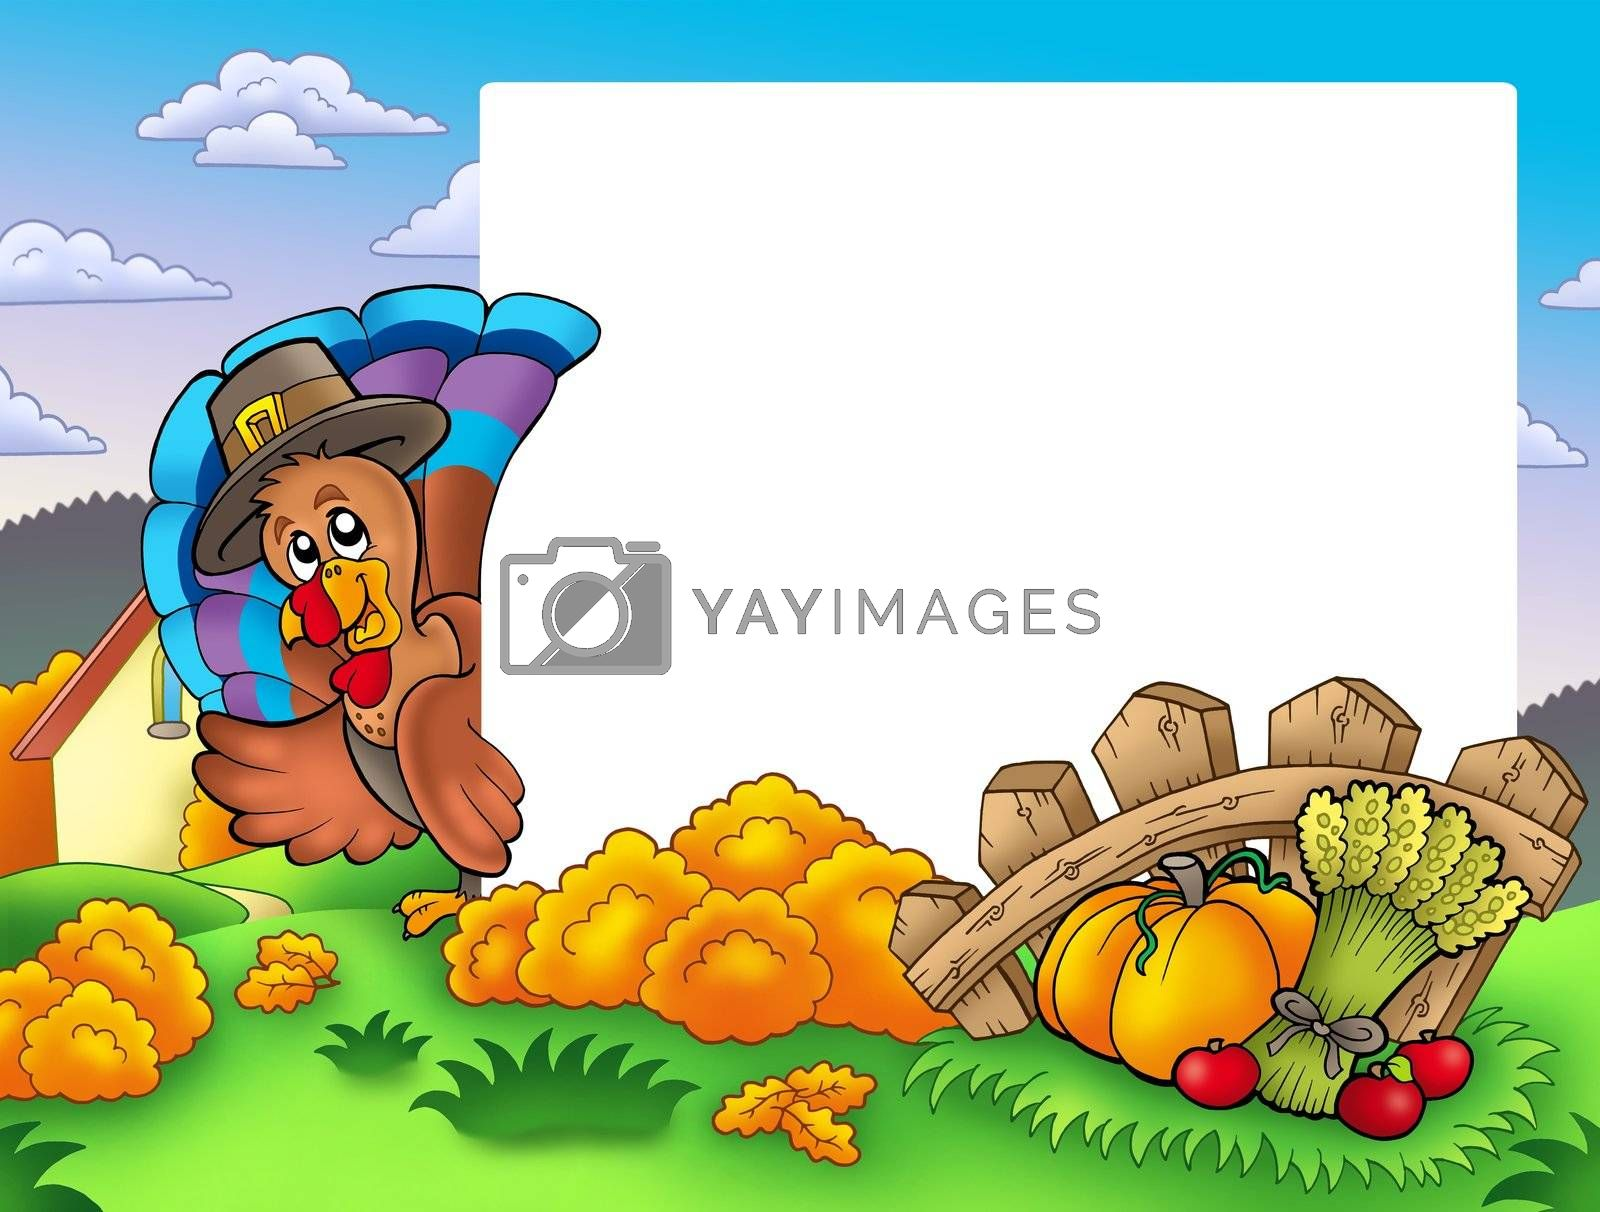 Thanksgiving frame with turkey 1 - color illustration.